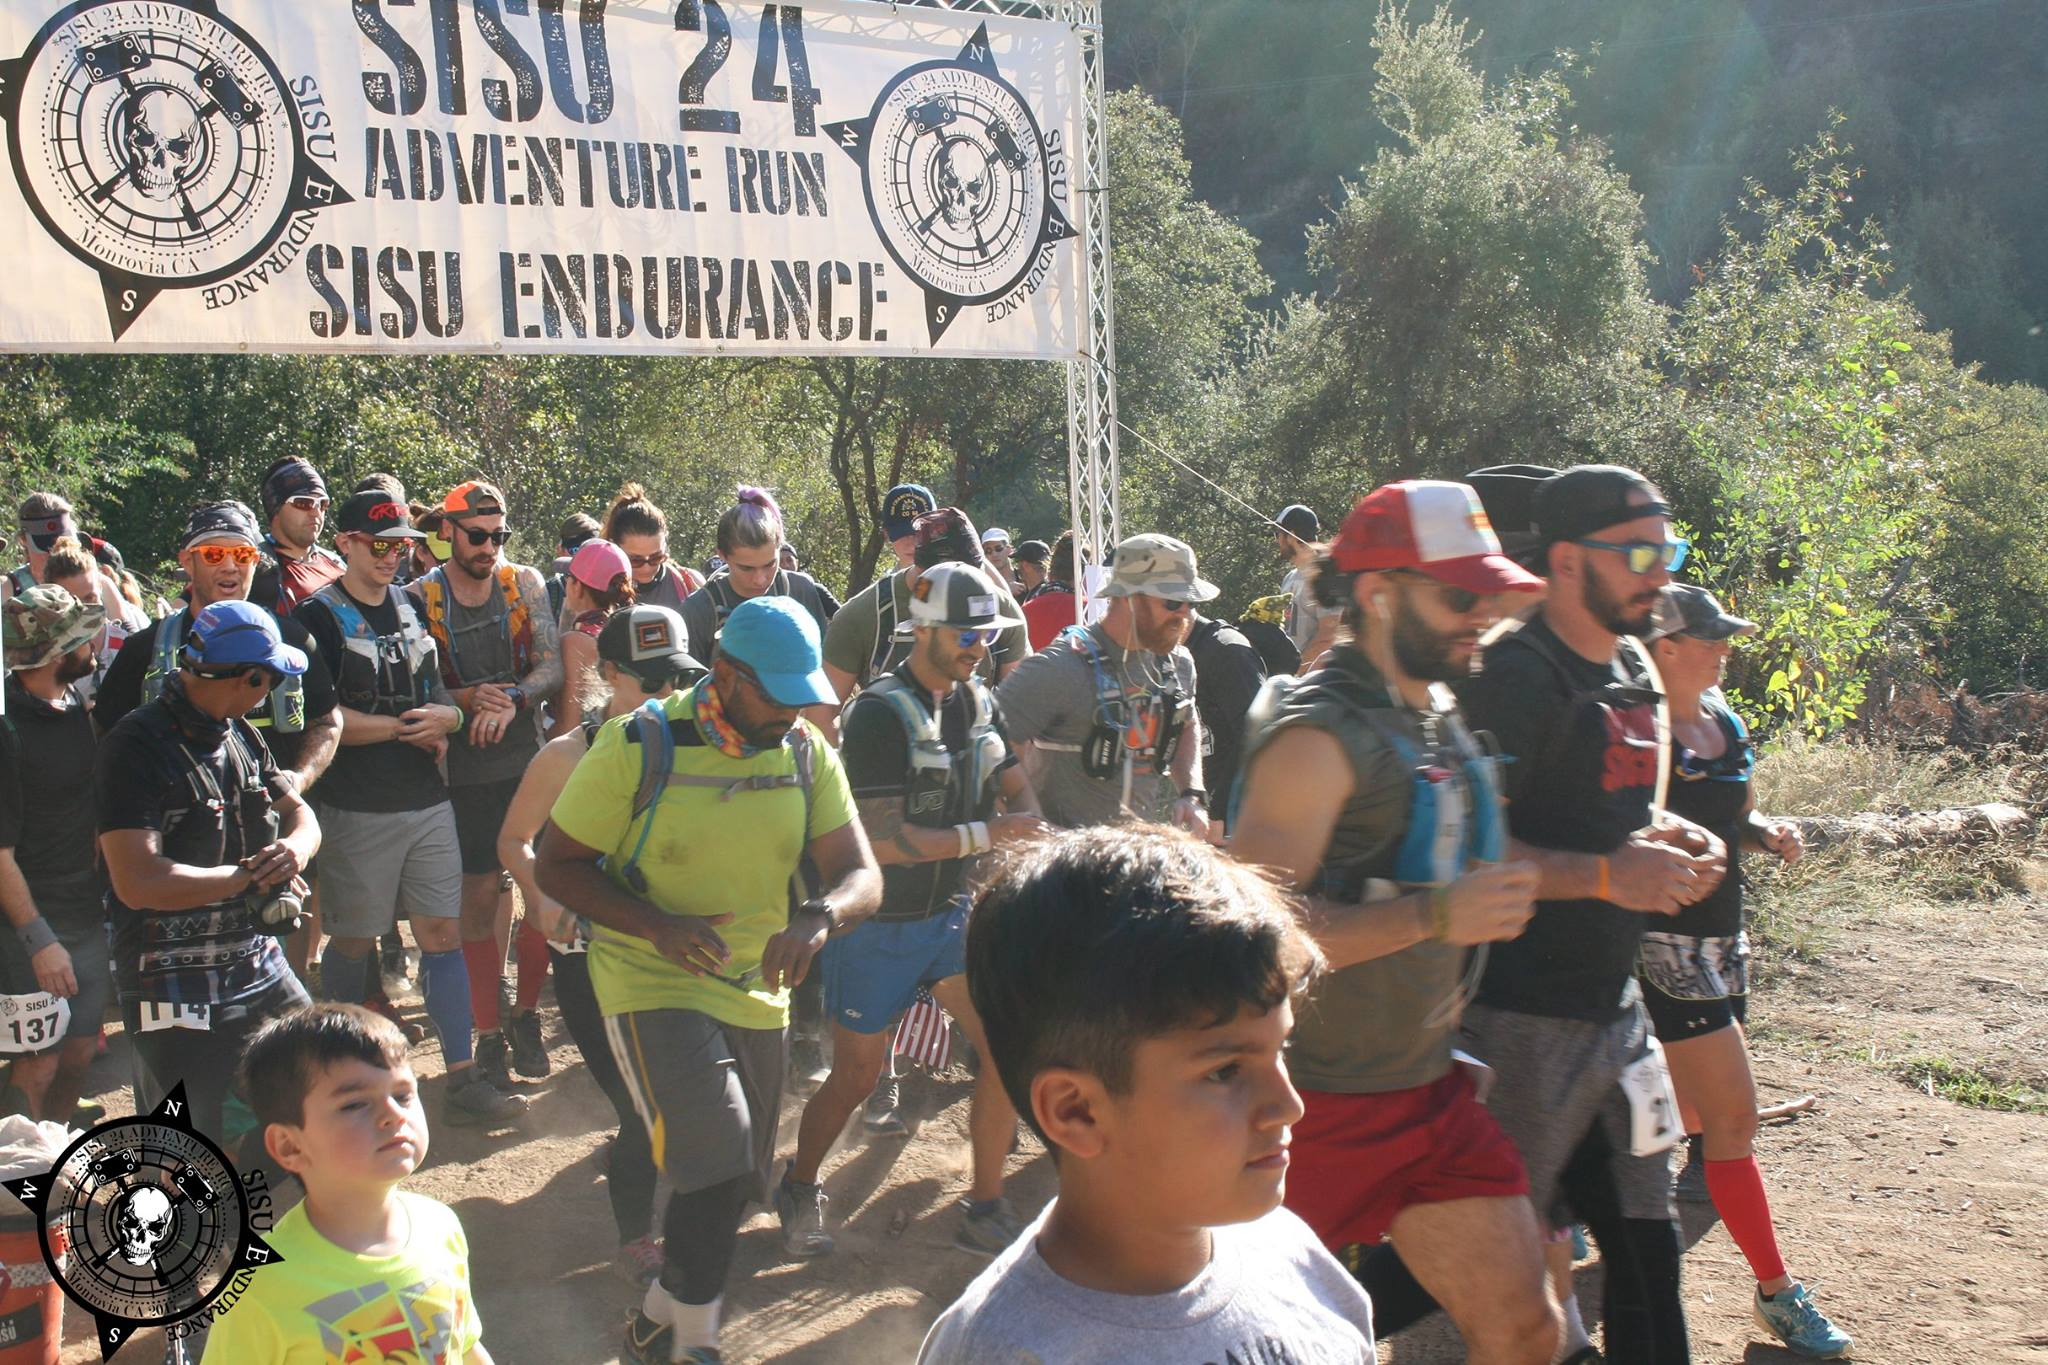 SISU 24 ADVENTURE RUN – RUNNING FOR SETH